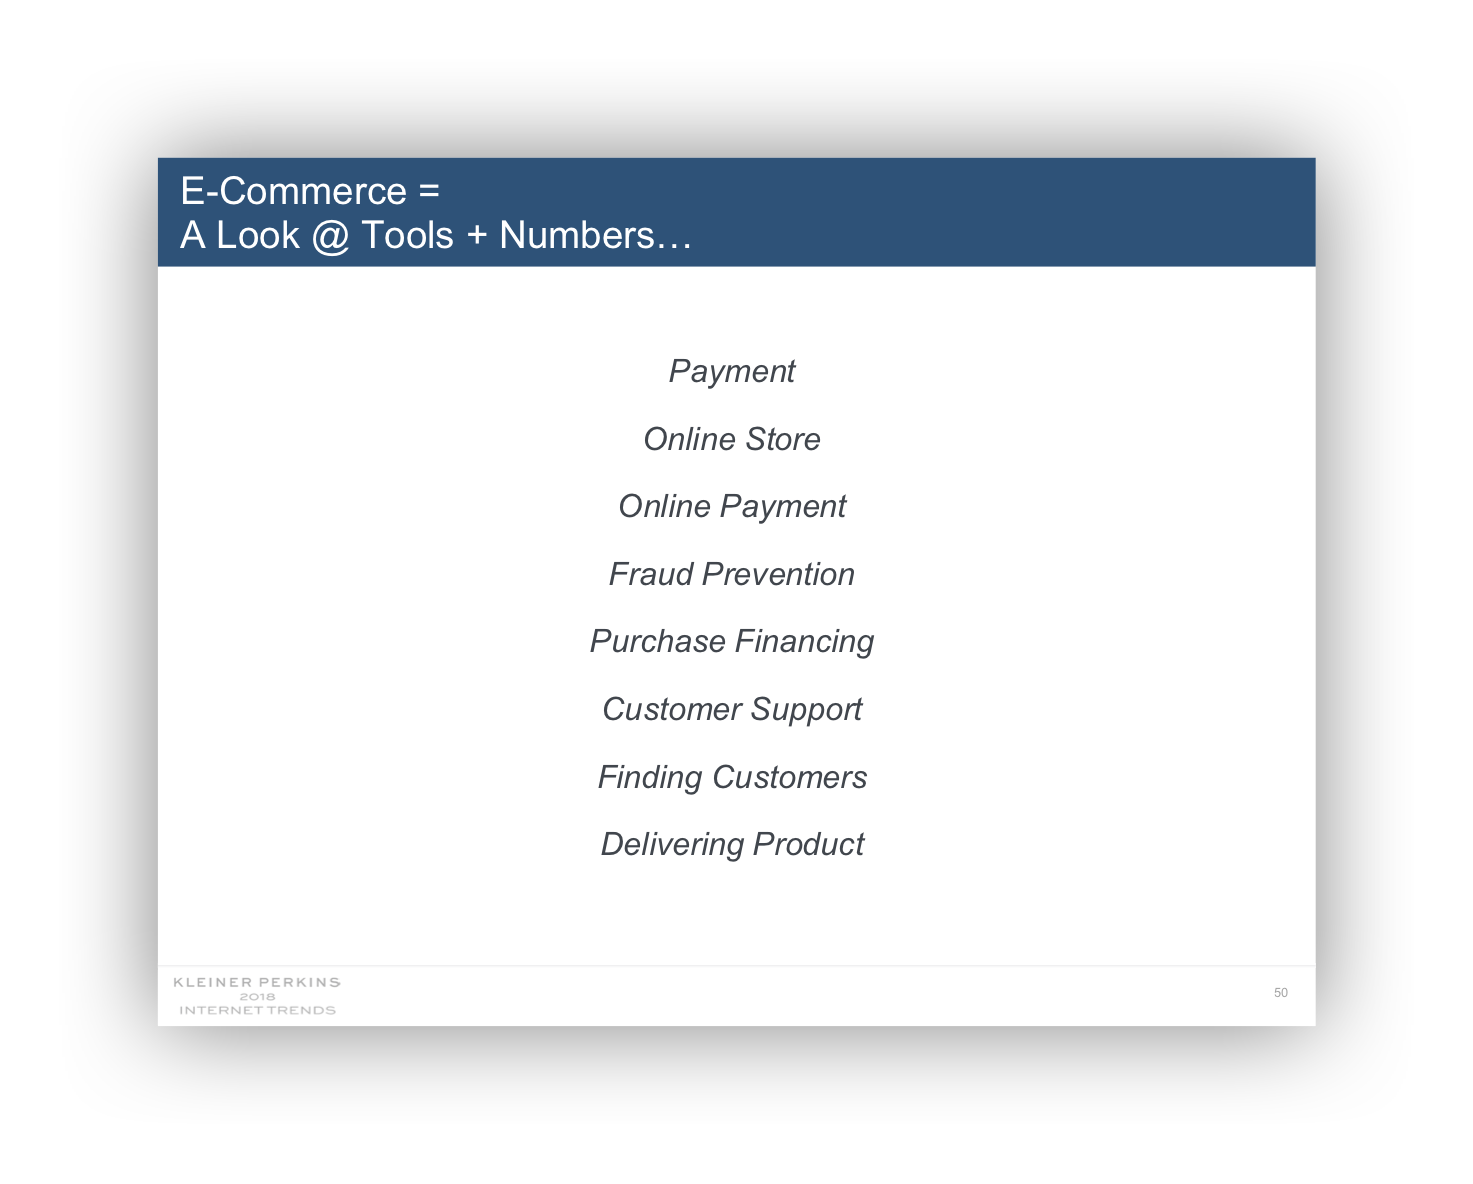 Slide containing text:  E-Commerce = A Look @ Tools + Numbers...  Payment Online Store Online Payment Fraud Prevention Purchase Financing Customer Support Finding Customers Delivering Product